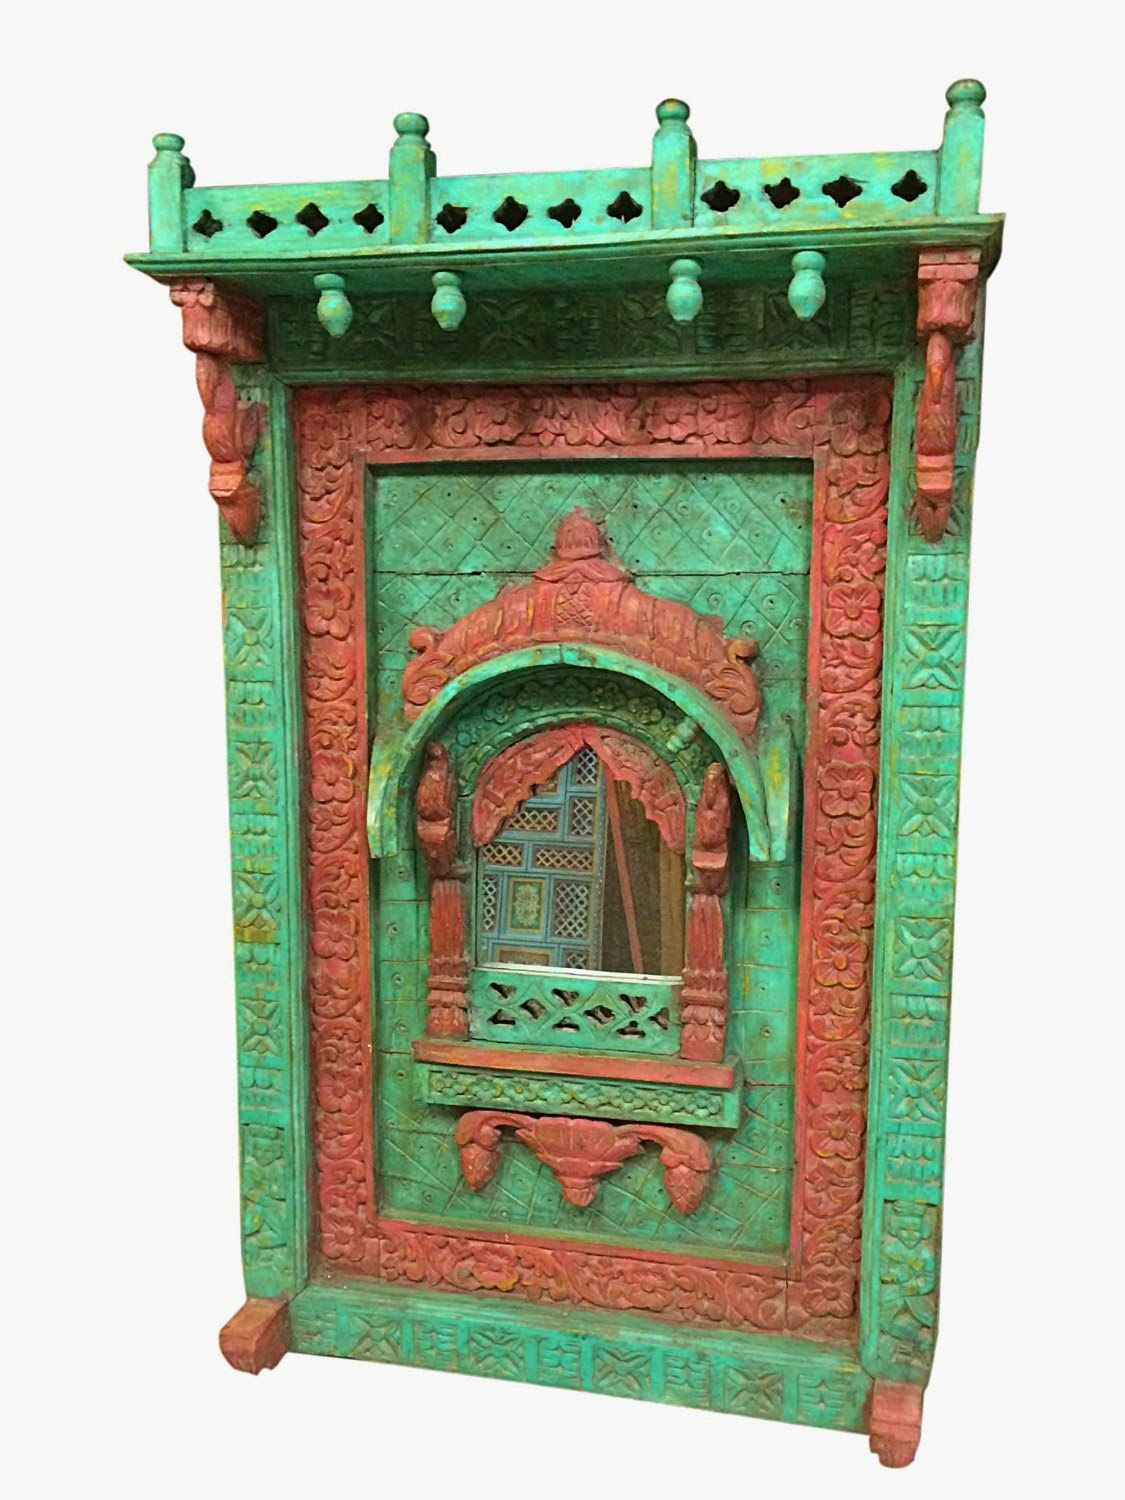 http://www.amazon.com/Antique-Indian-Arched-Jharokha-Accessories/dp/B00RMOJ562/ref=sr_1_43?m=A1FLPADQPBV8TK&s=merchant-items&ie=UTF8&qid=1427434743&sr=1-43&keywords=home+decorative+item